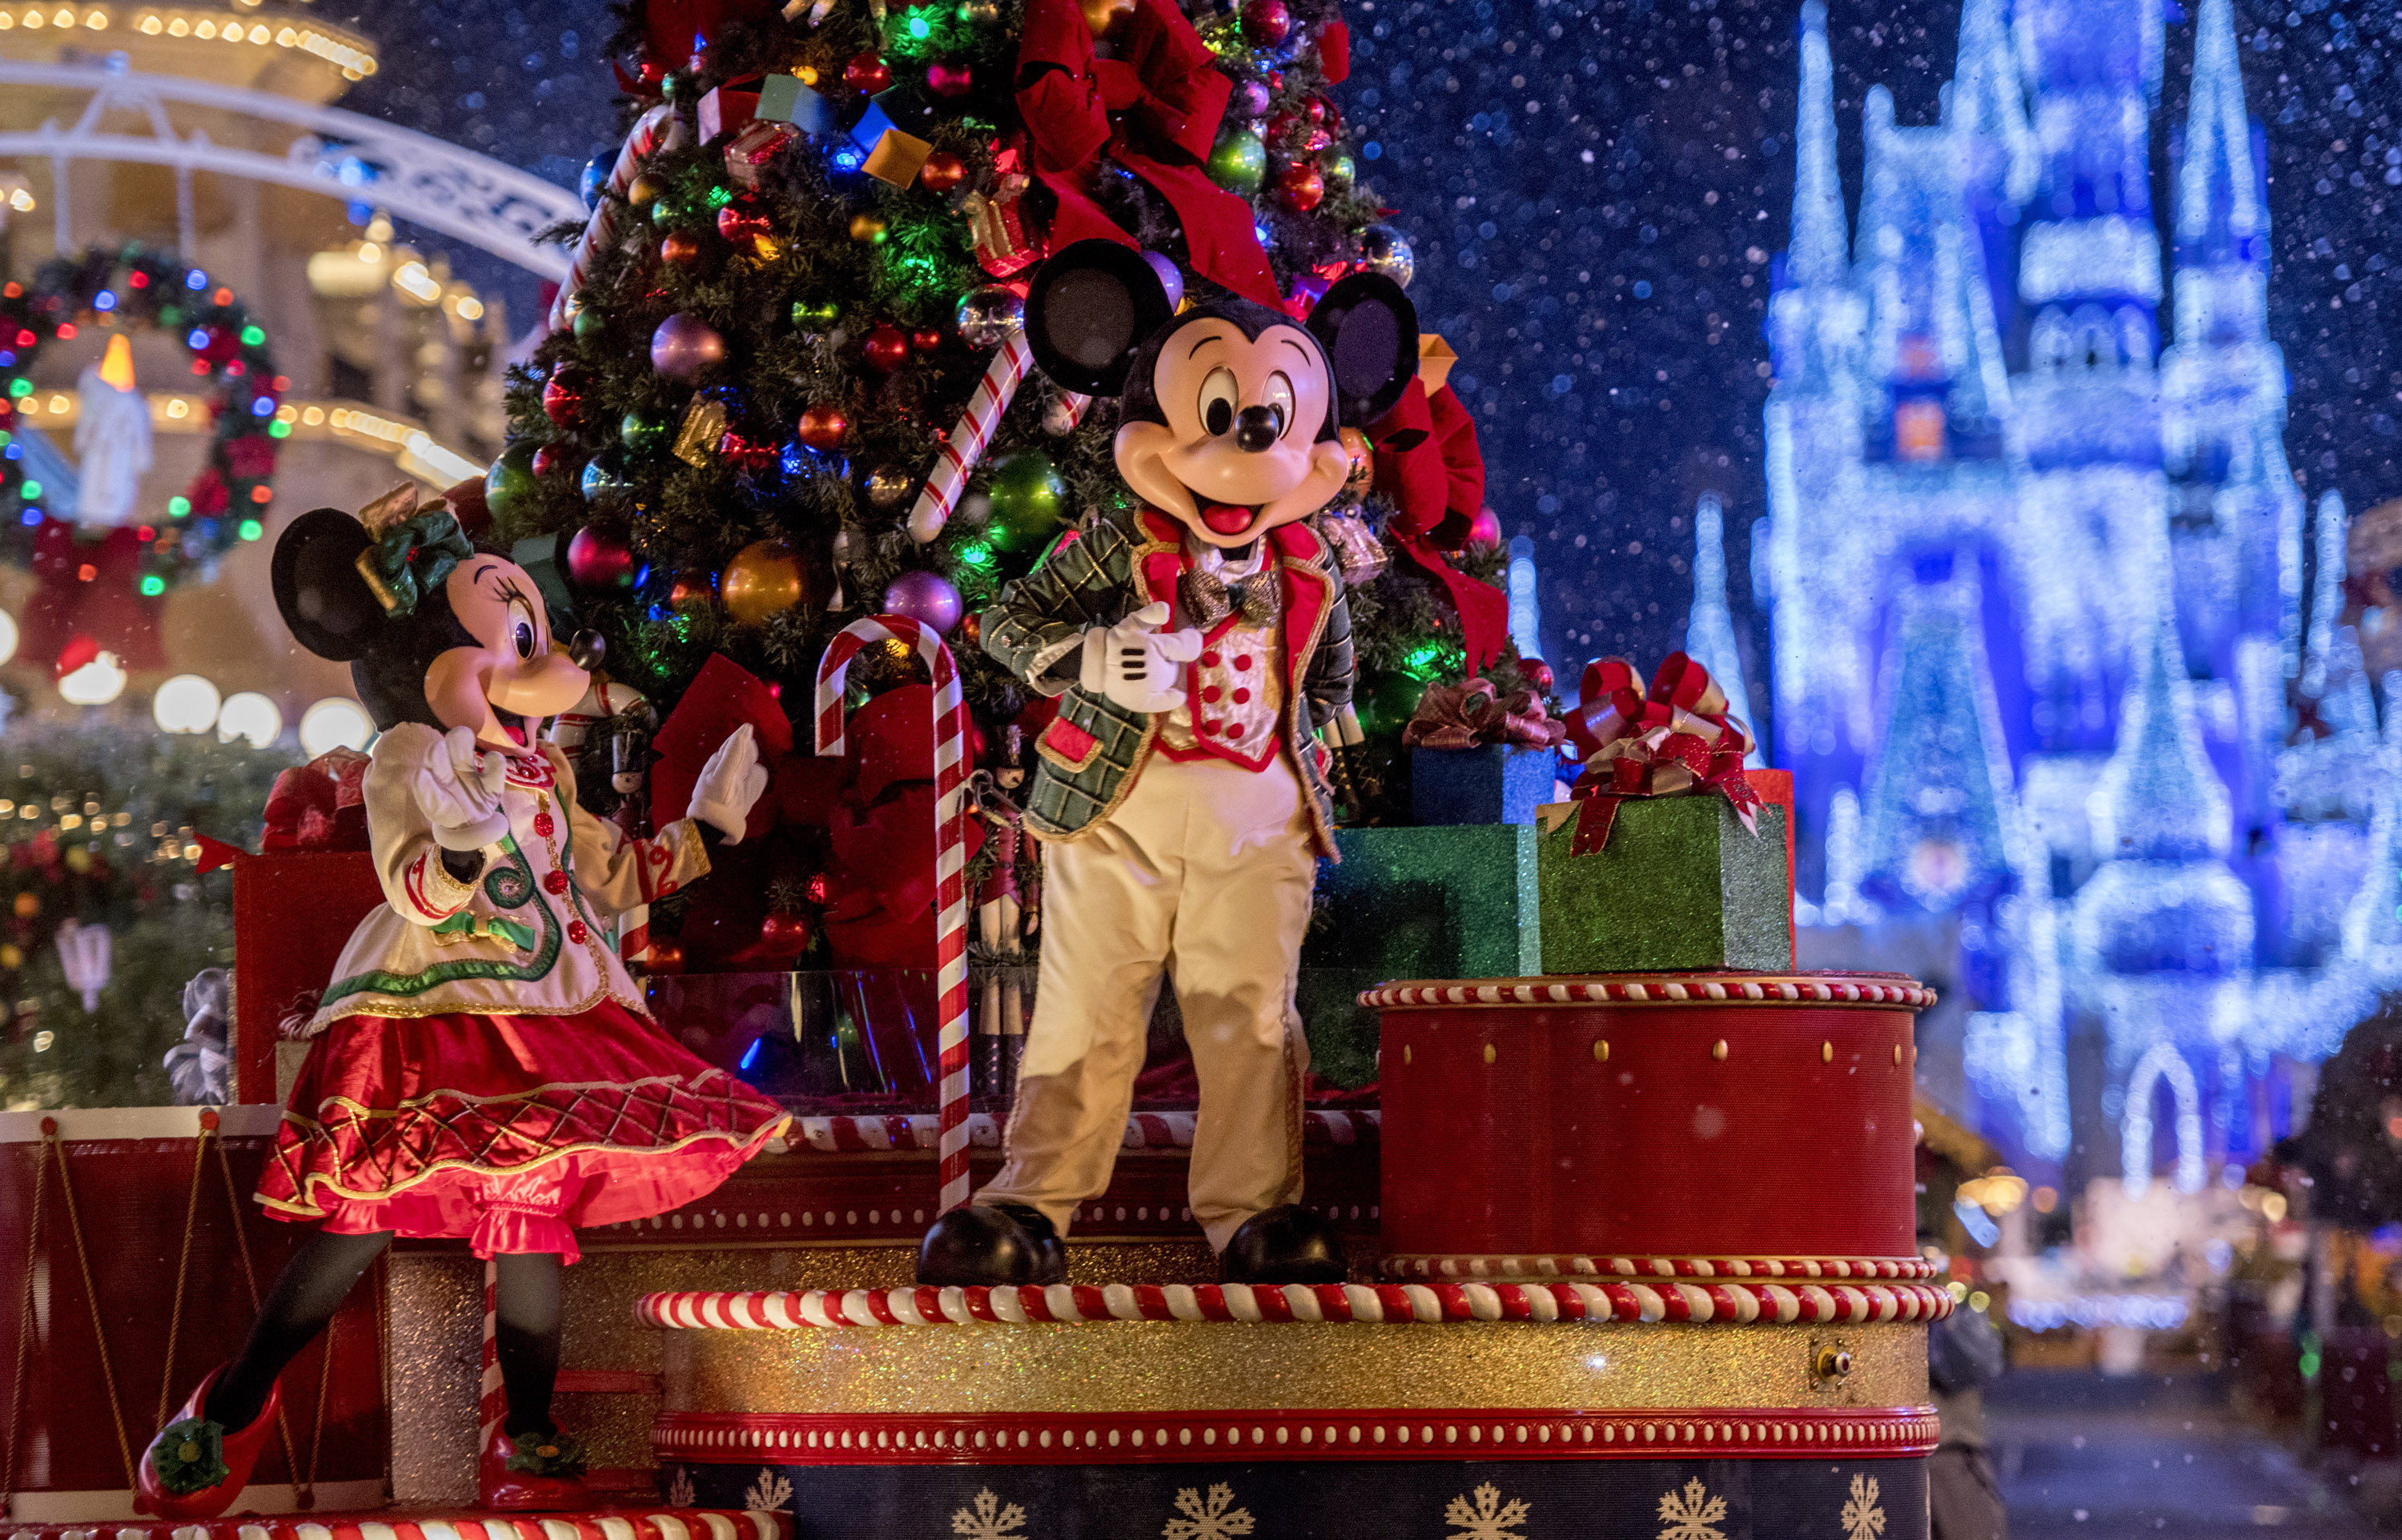 One of the best Christmas events at Disney World - Mickey's Very Merry Christmas Party! #disneyworld #xmasdisney #christmasatdisney #disneyevents #disneytrip #disneyplanning #disneyvacation